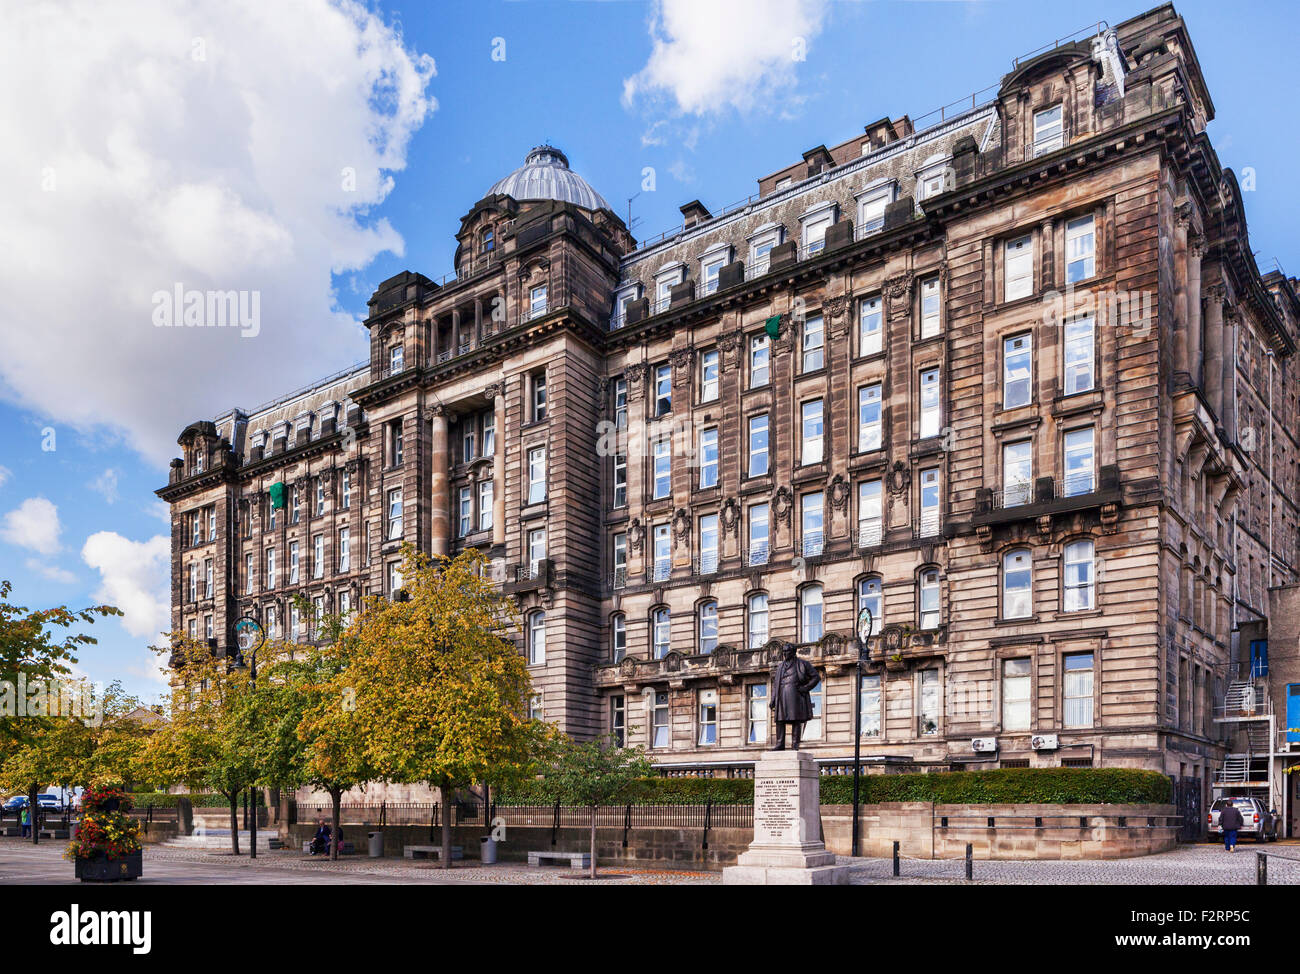 The Medical Block, dating from 1914, of Glasgow Royal Infirmary. - Stock Image